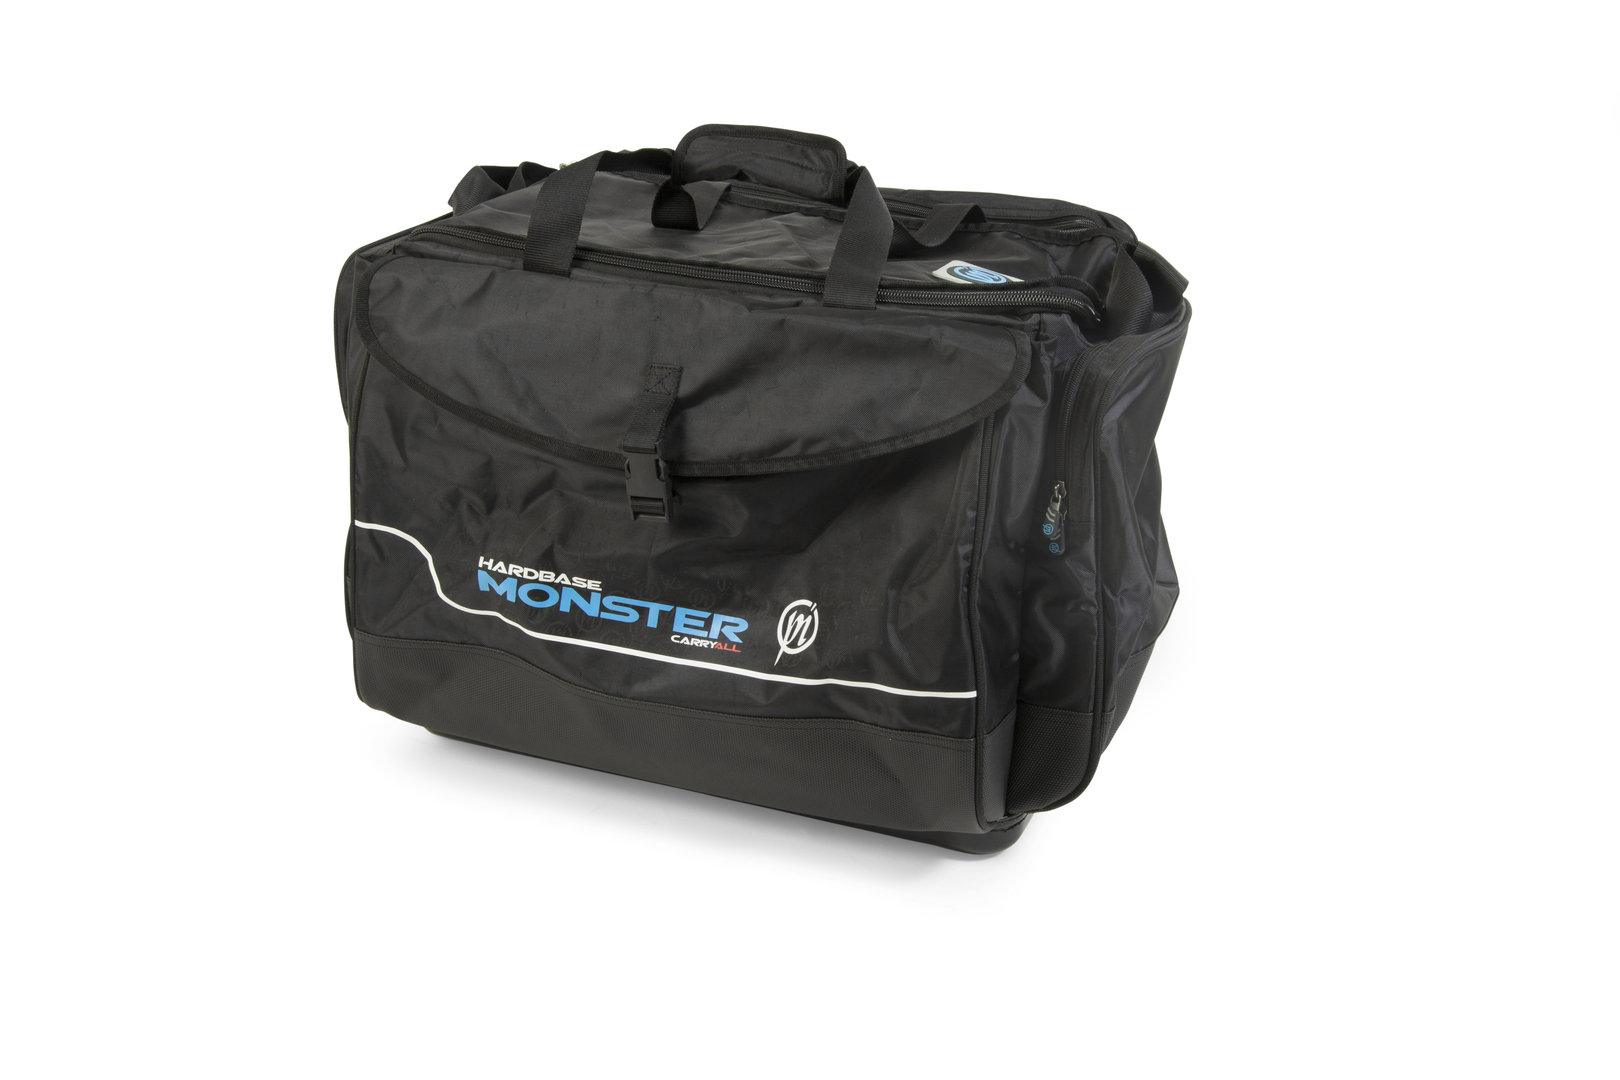 Preston Monster Carryall